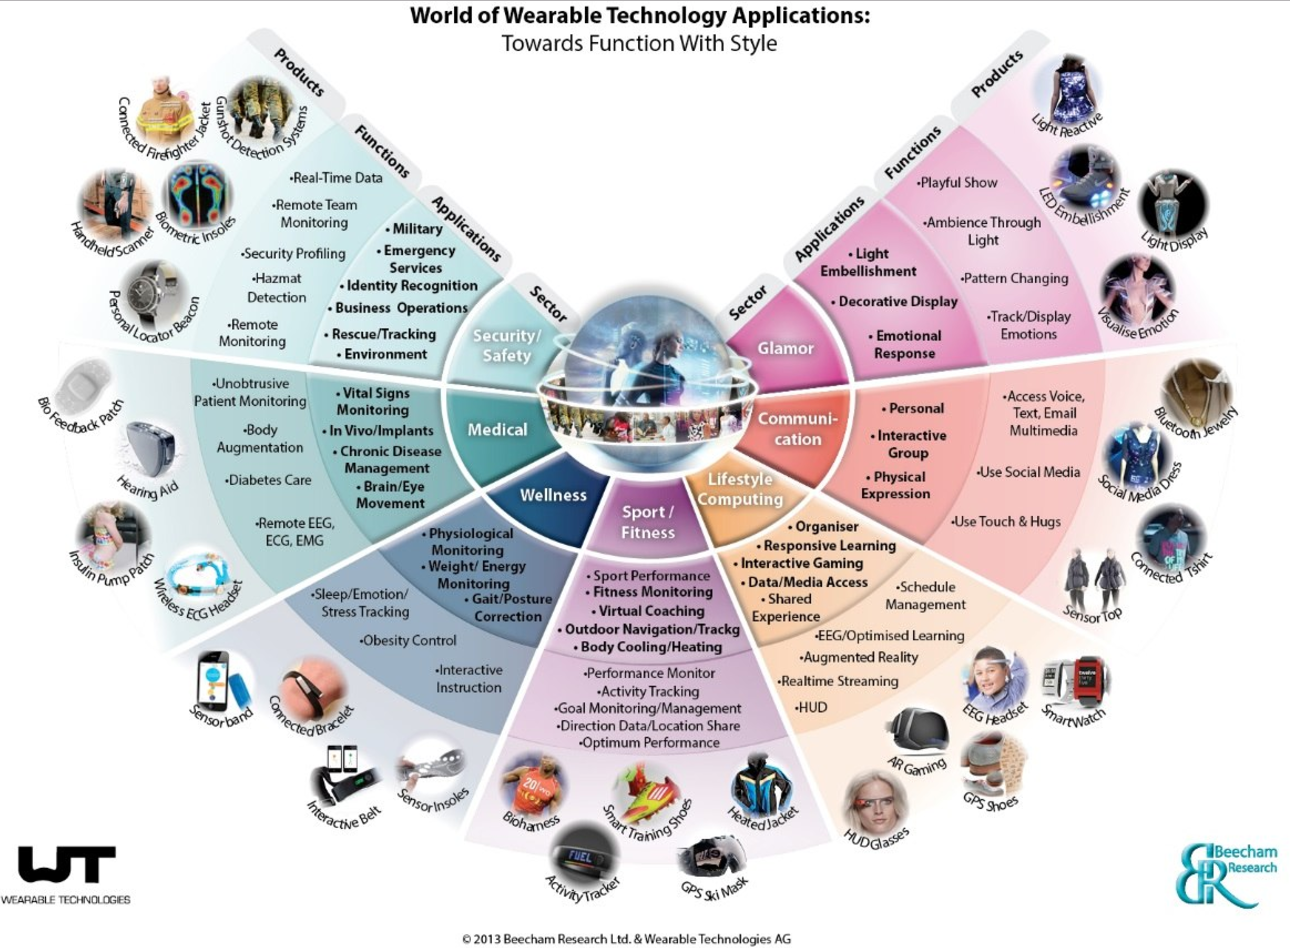 world of wearable technology applications.png